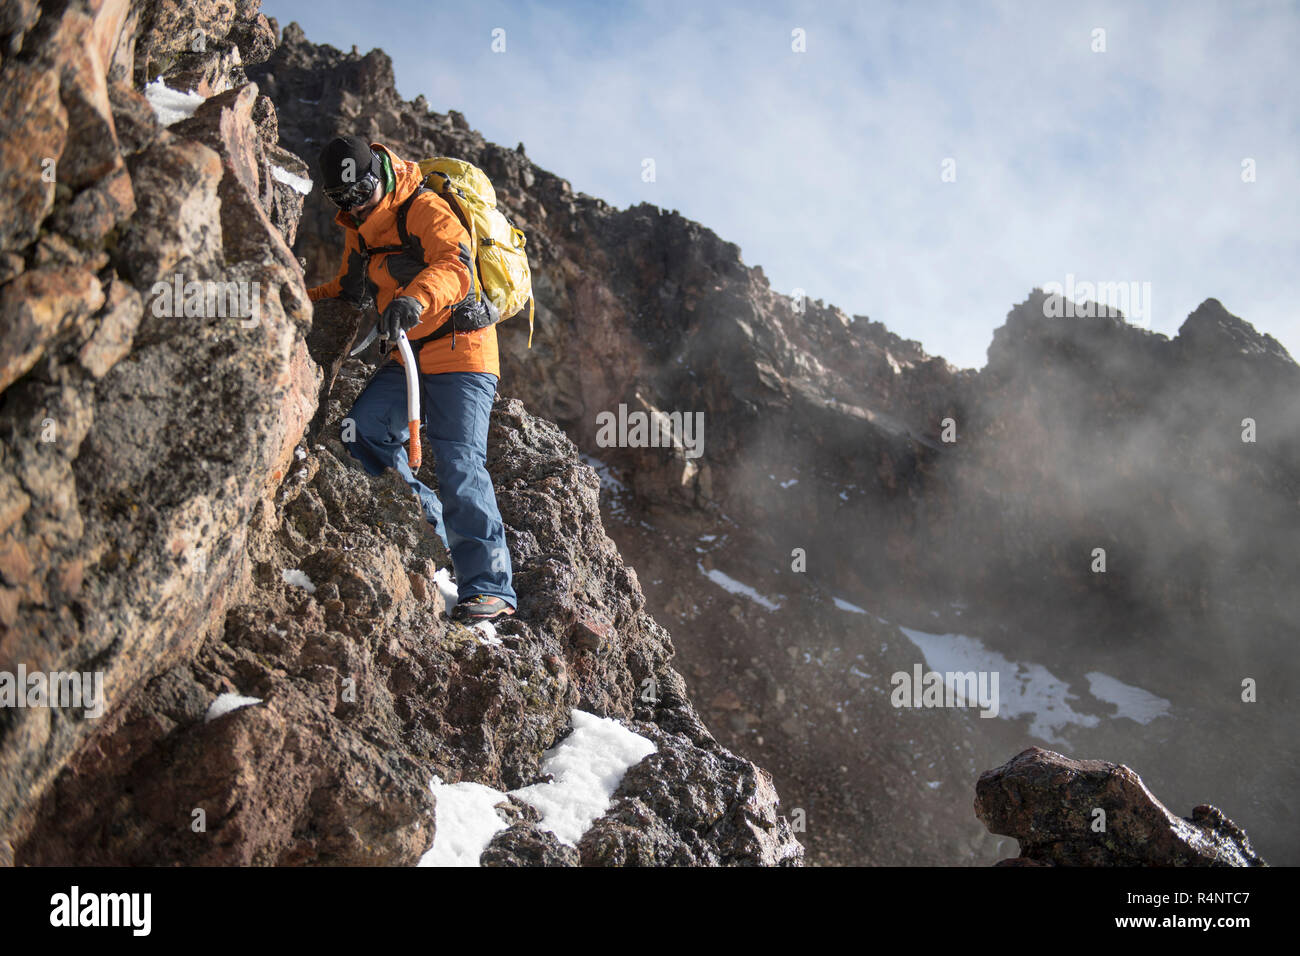 One man climbs trough a rocky section using a piolet, or ice axe, on his ascent to the Iztaccihuatl volcanoe at the Izta-Popo Zoquiapan National Park in Puebla, Mexico Stock Photo